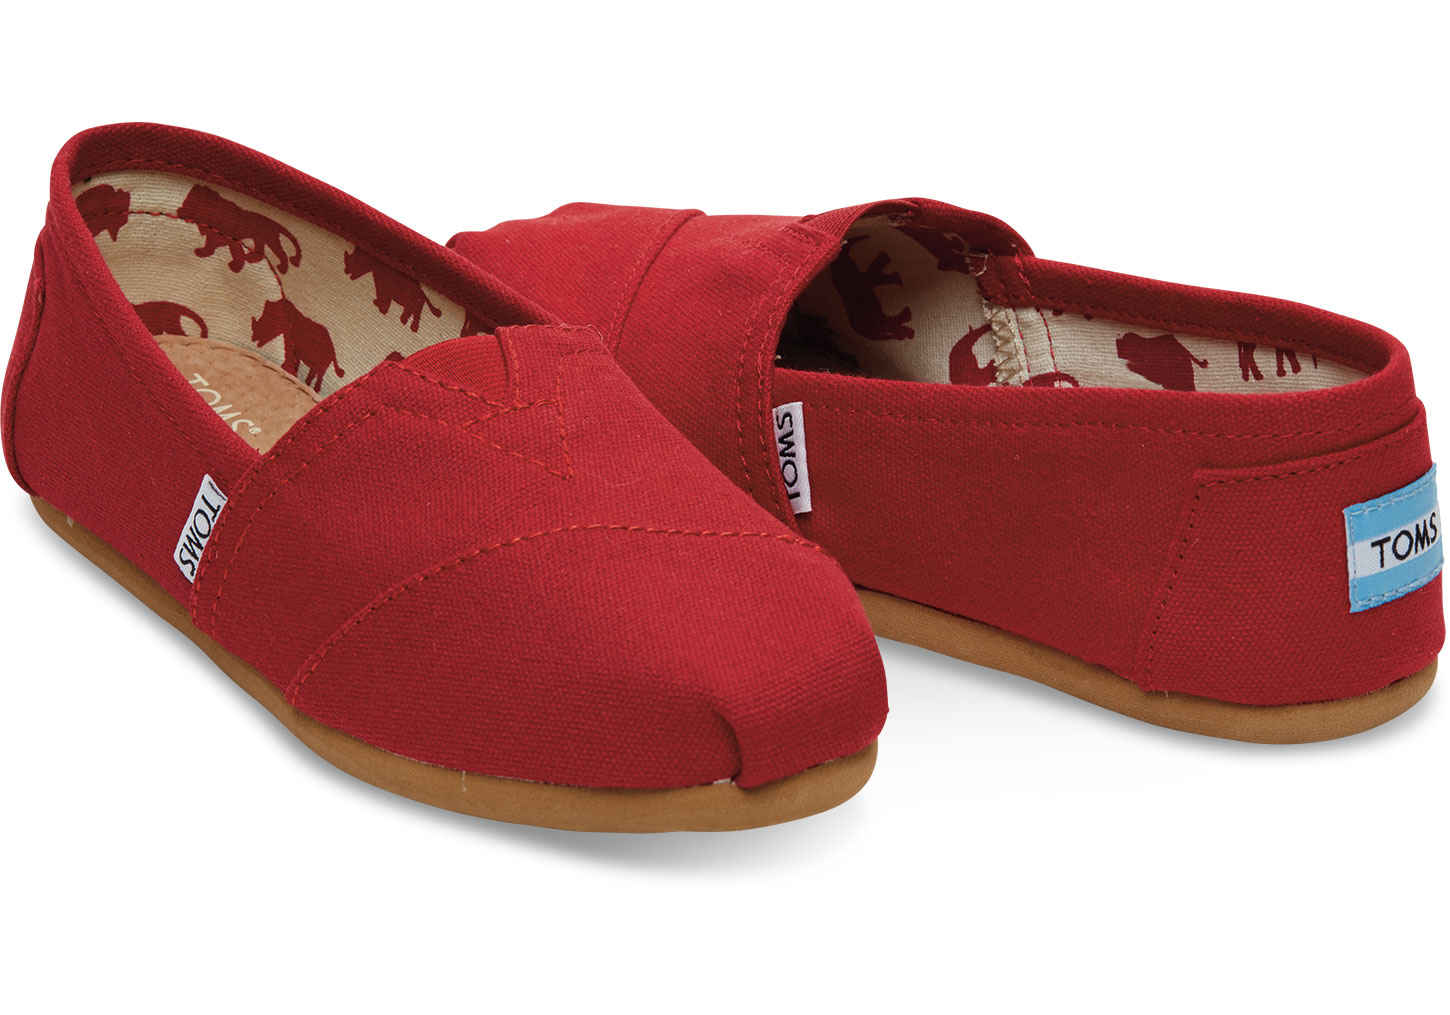 Toms Classic Red Canvas női cipő